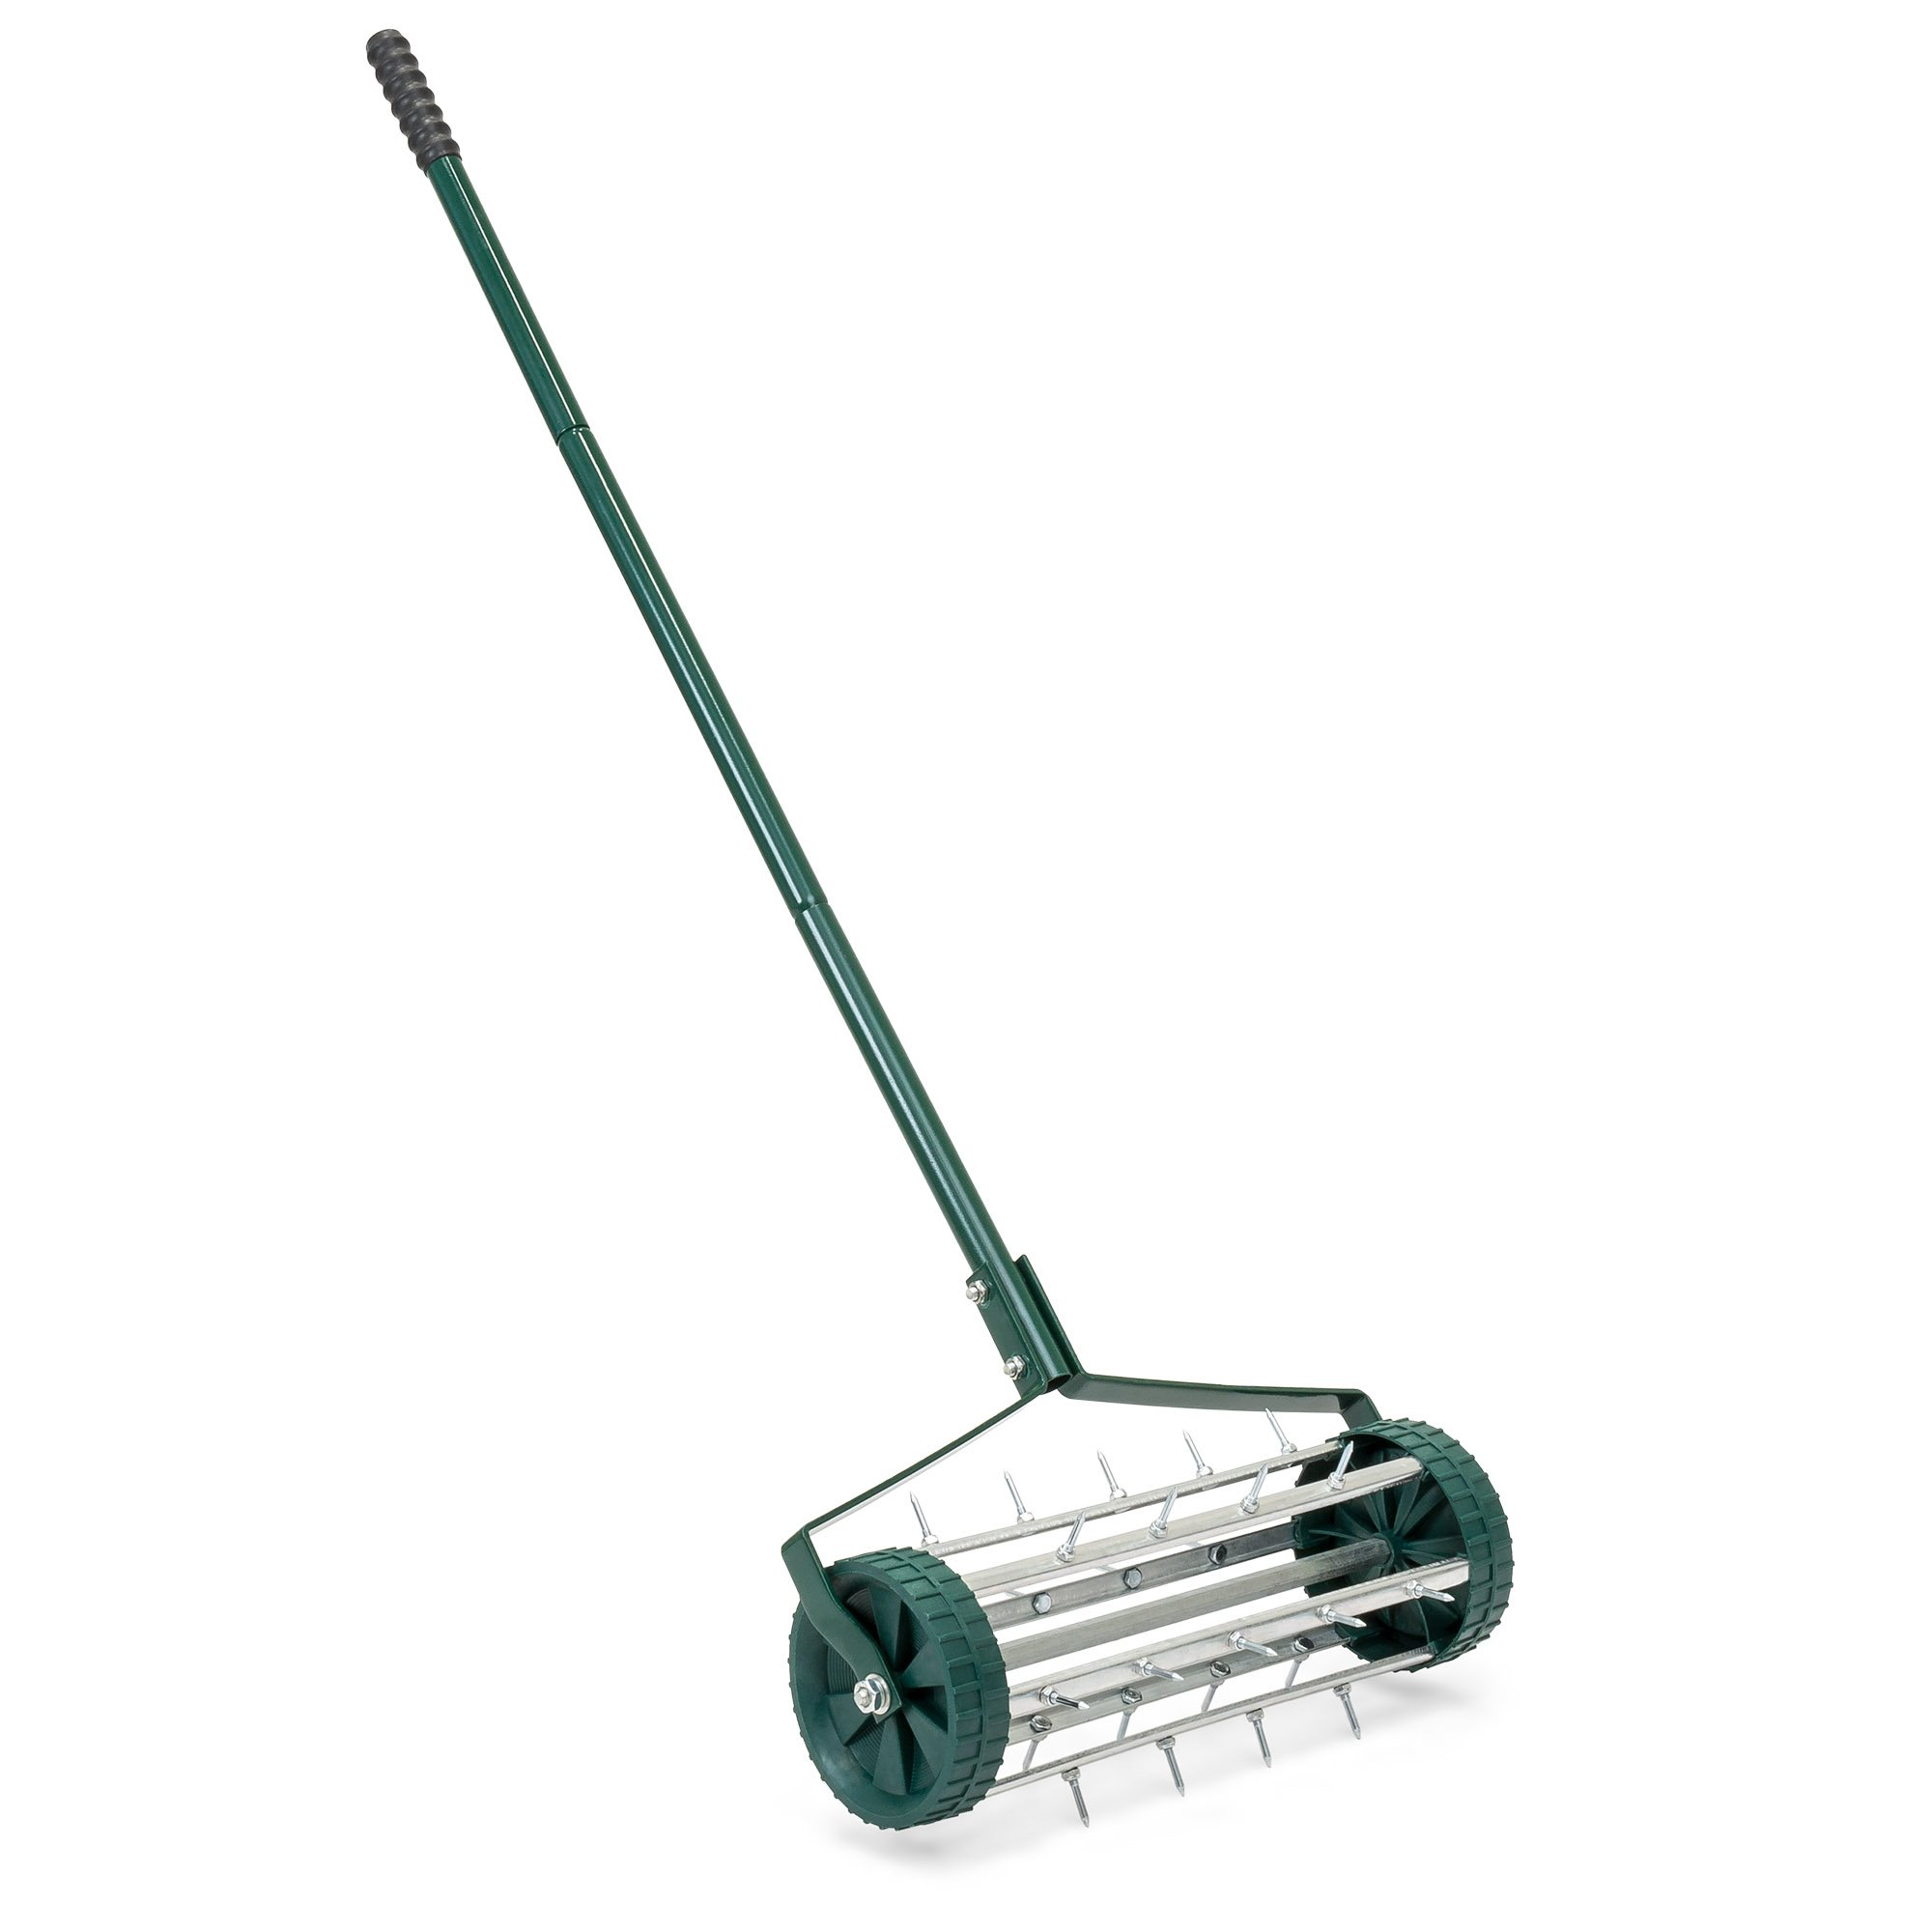 Best Choice Products 18-inch Rolling Lawn Aerator Gardening Tool for Grass Maintenance, Soil Care with Tine Spikes, 50in Handle, Dark Green by Best Choice Products